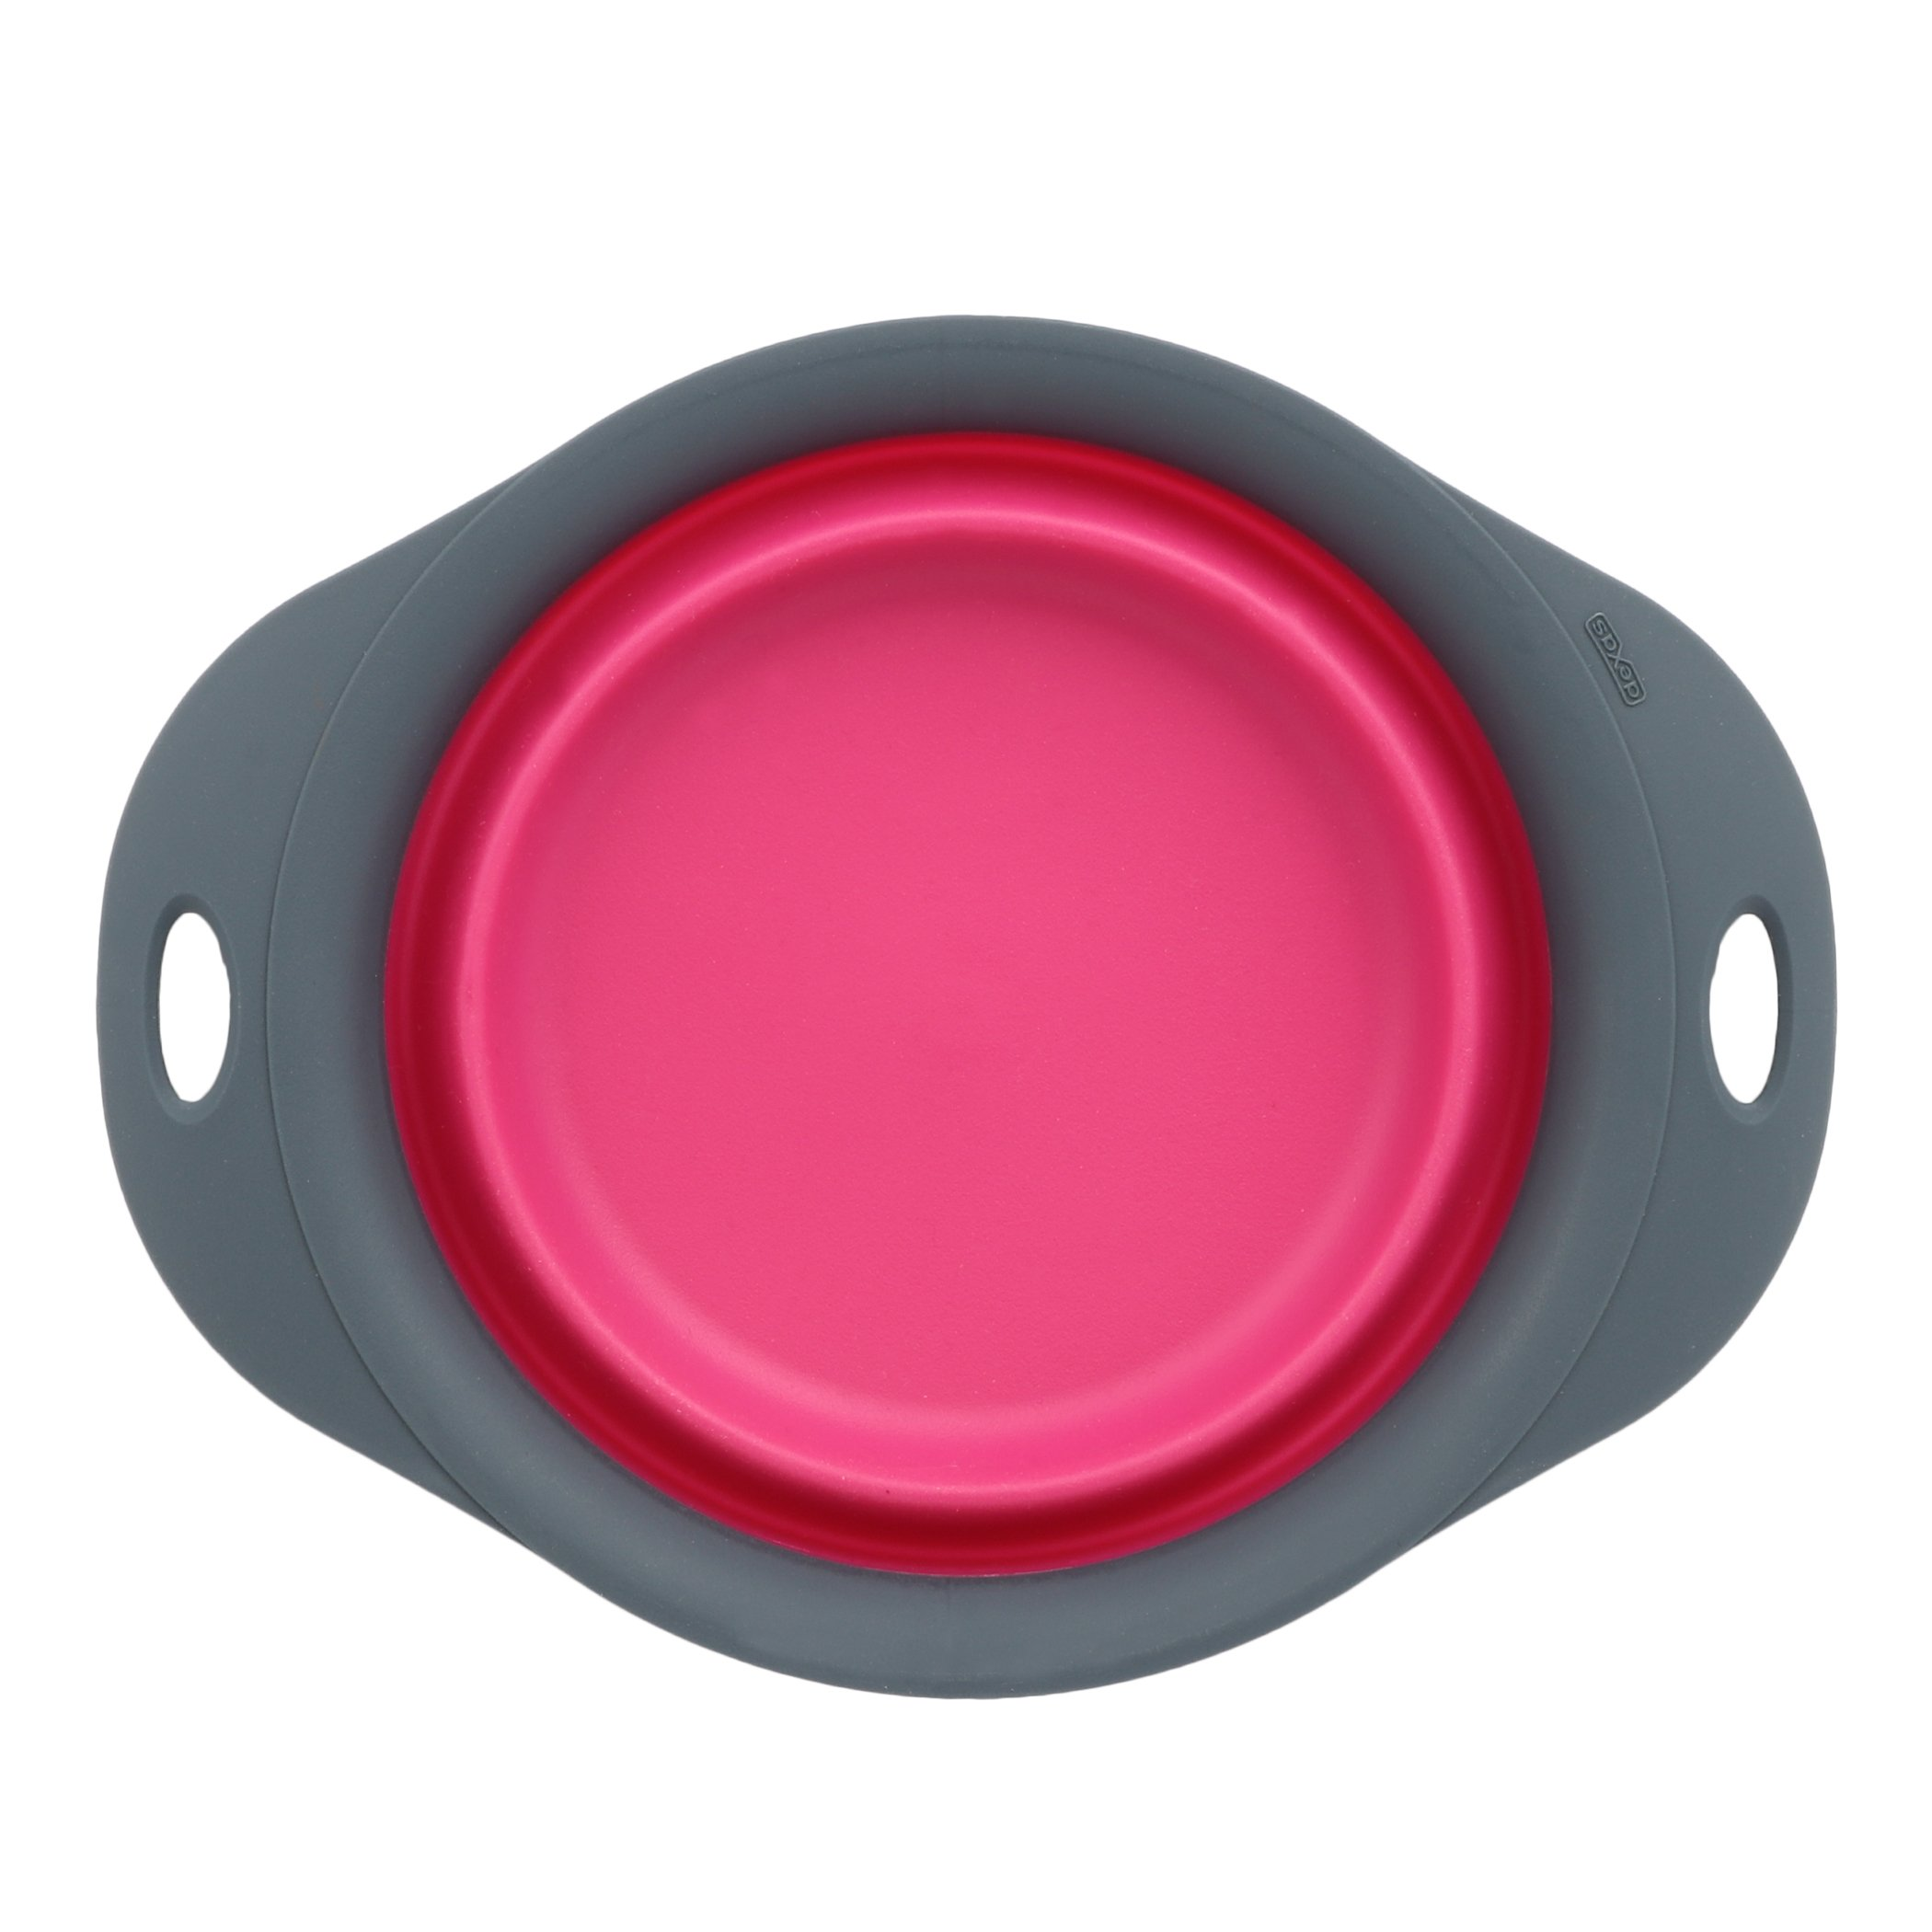 Dexas Popware for Pets Single Bowl Collapsible Travel Feeder, 3 Cup Capacity, Pink by Dexas